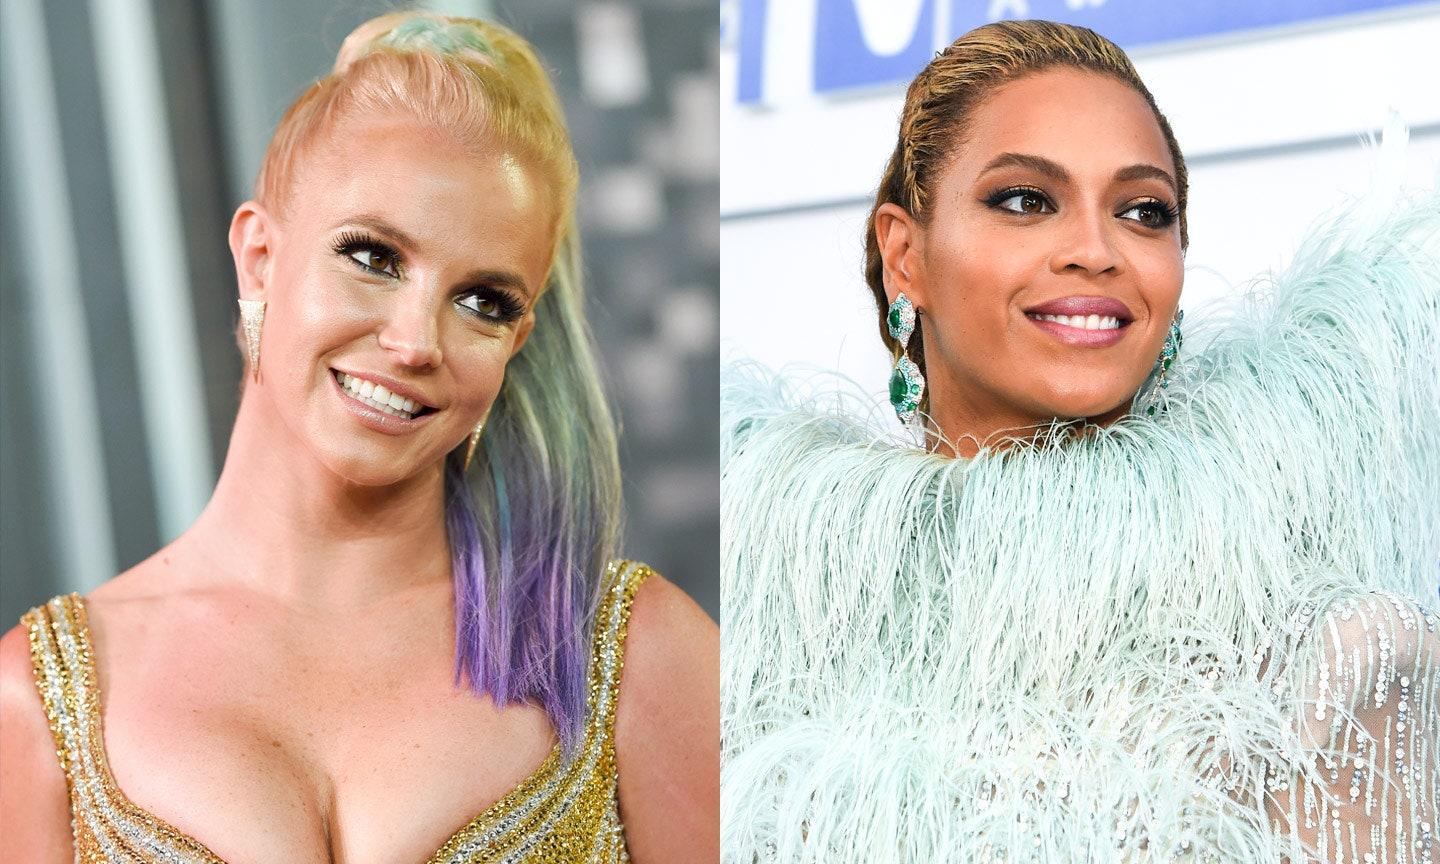 Britney Spears Calls Herself Queen B And Beyonce's Beyhive Is Not Happy!